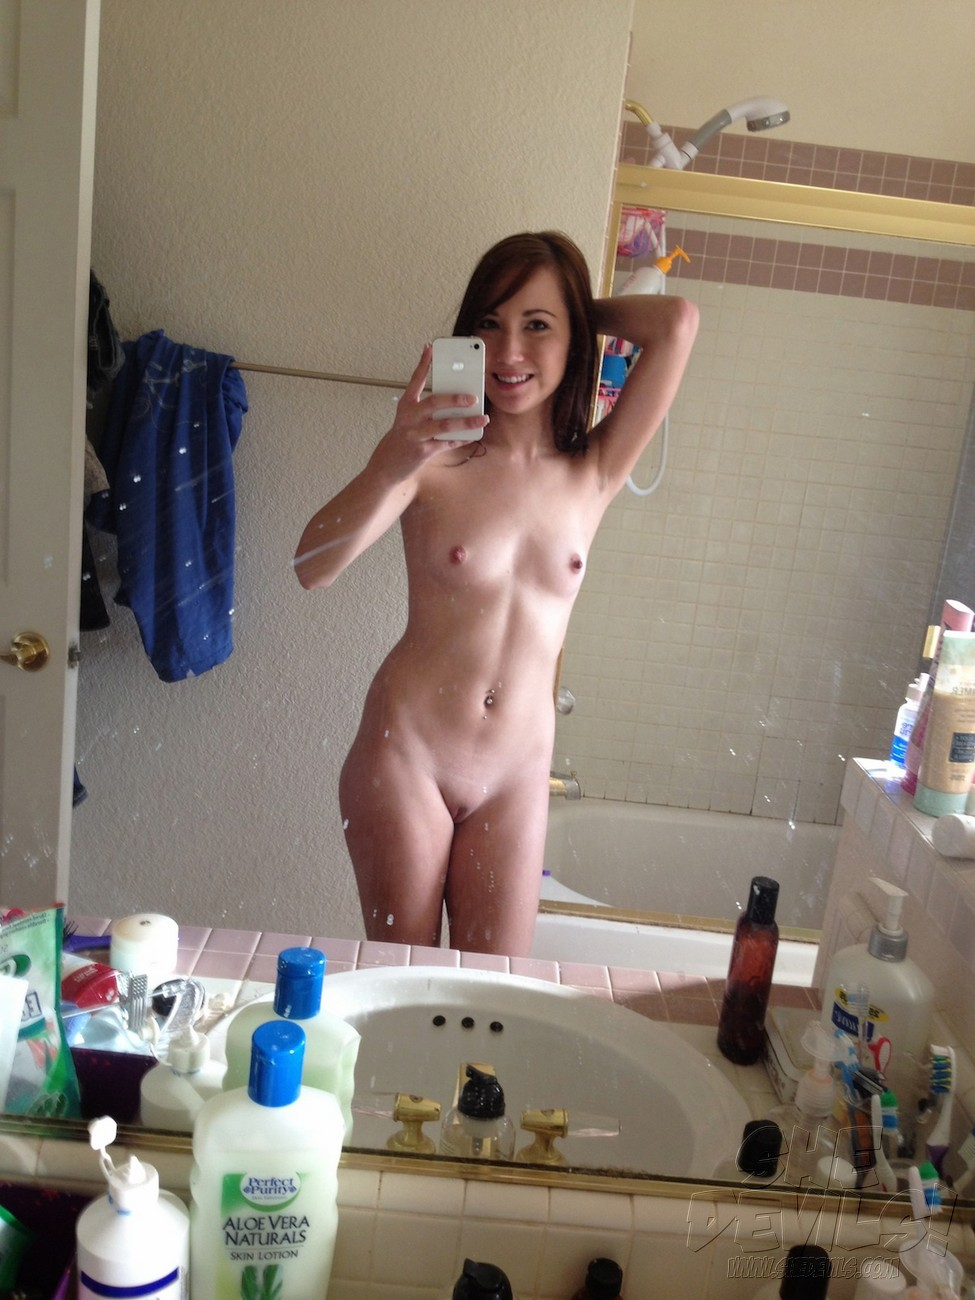 hot brazilian girls self shot nude pics